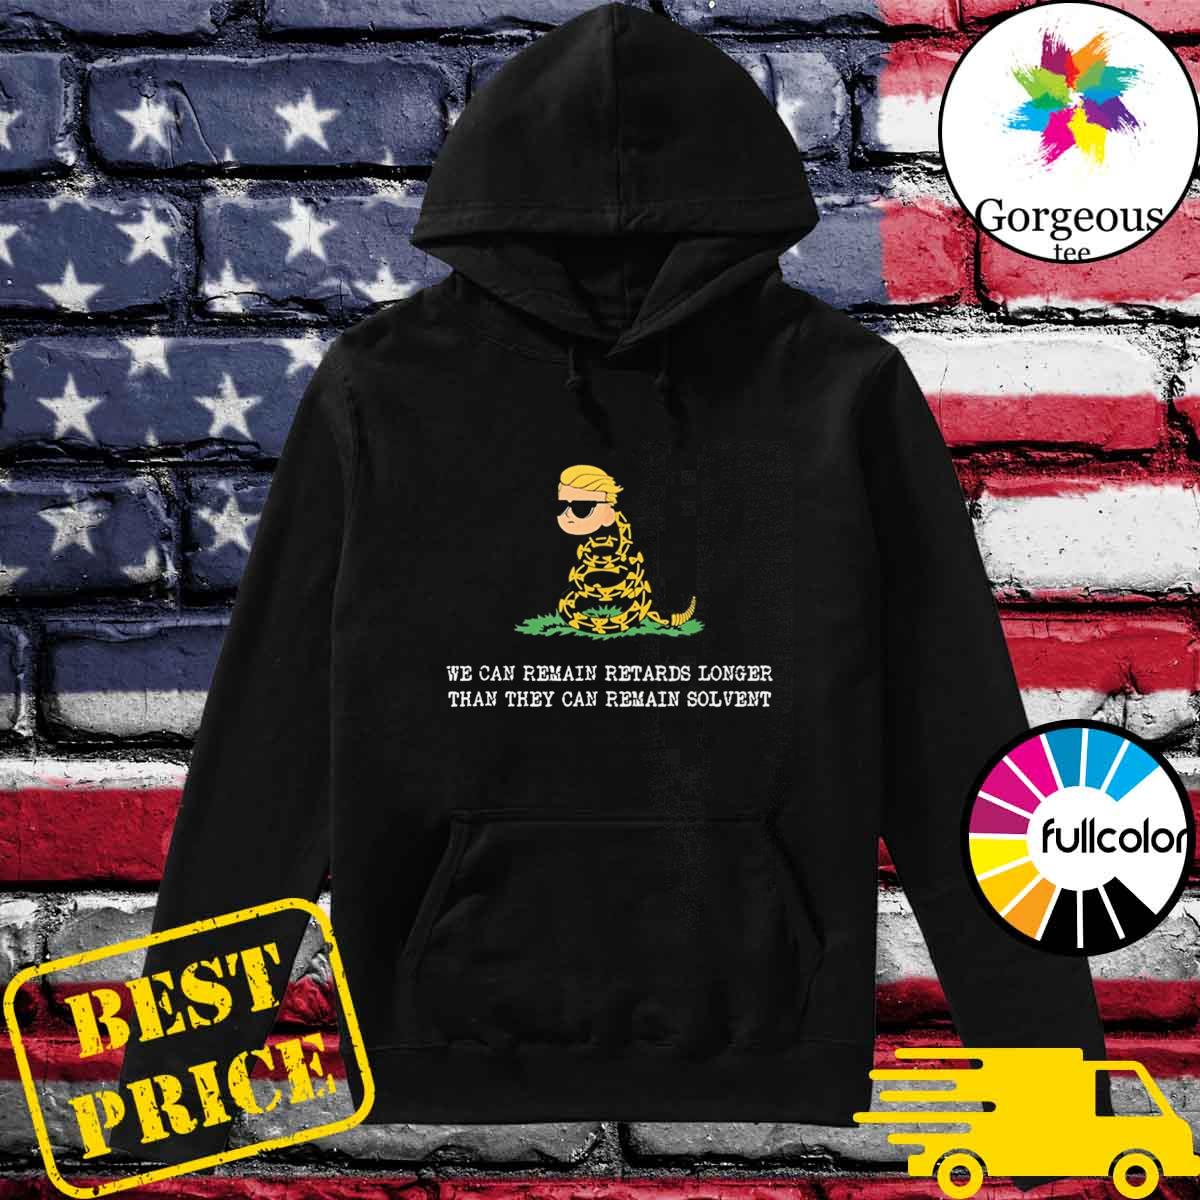 Market Anarchy We Can Remain Retards Longer Than They Can Remain Solbent T-Shirt Hoodie